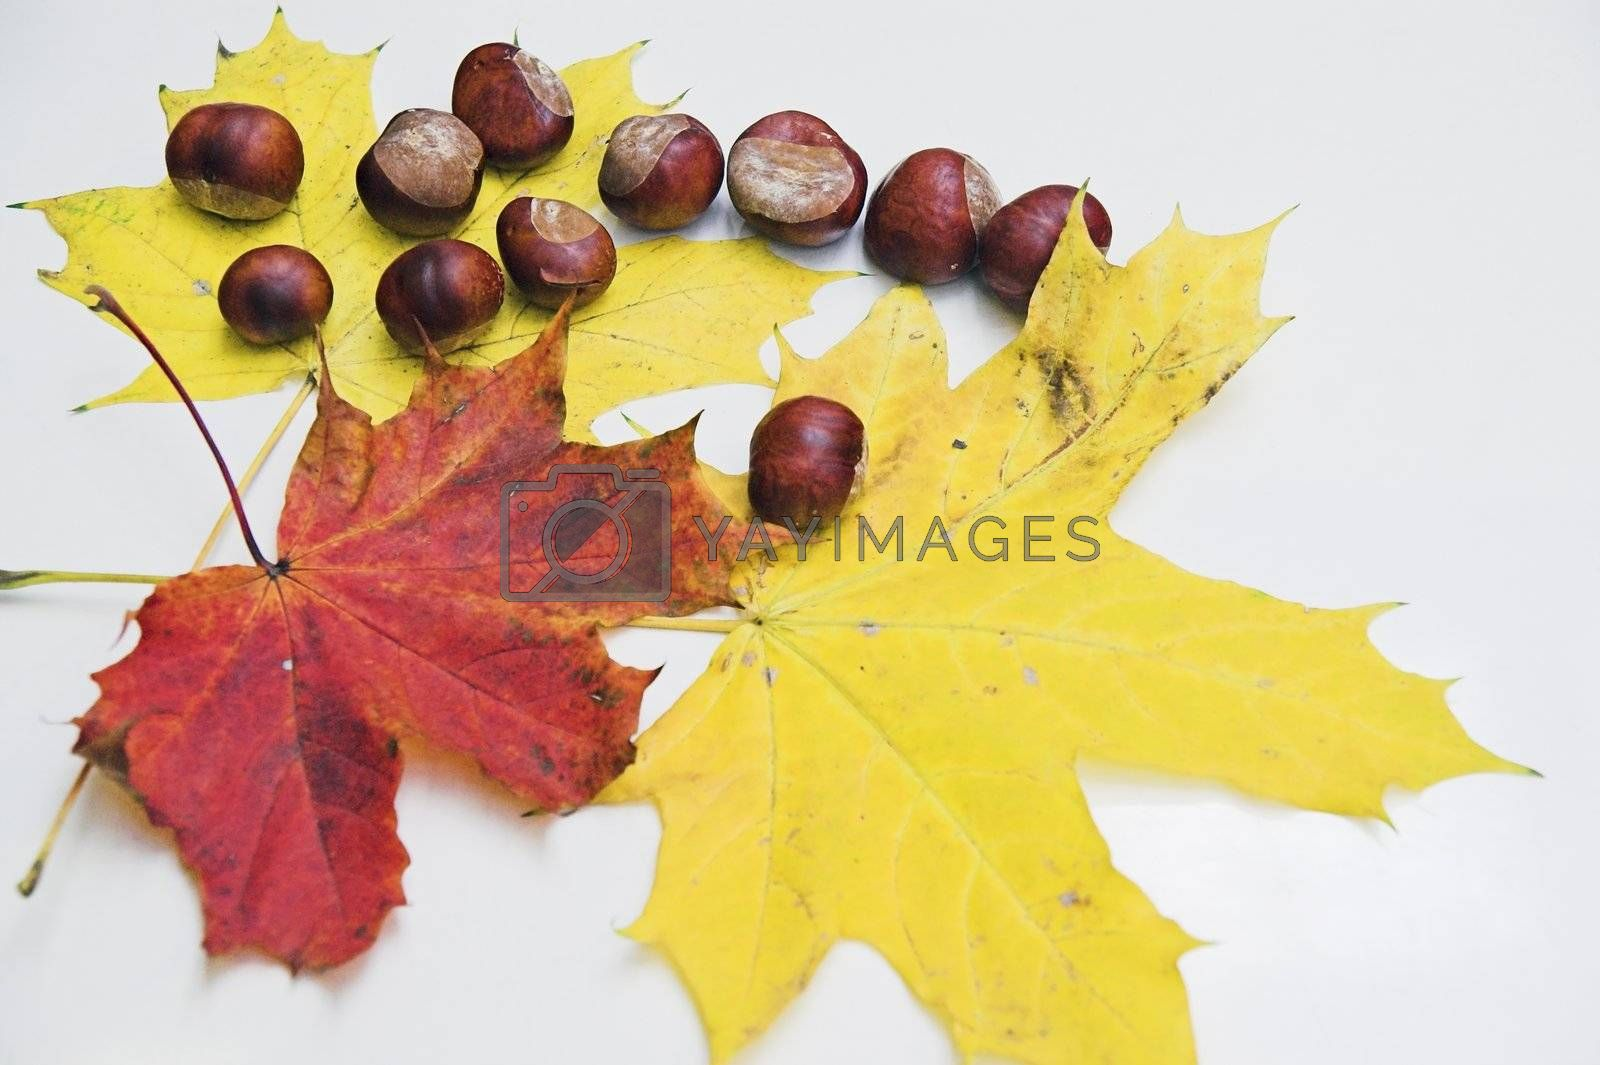 Autumn leaves and chestnuts on white background